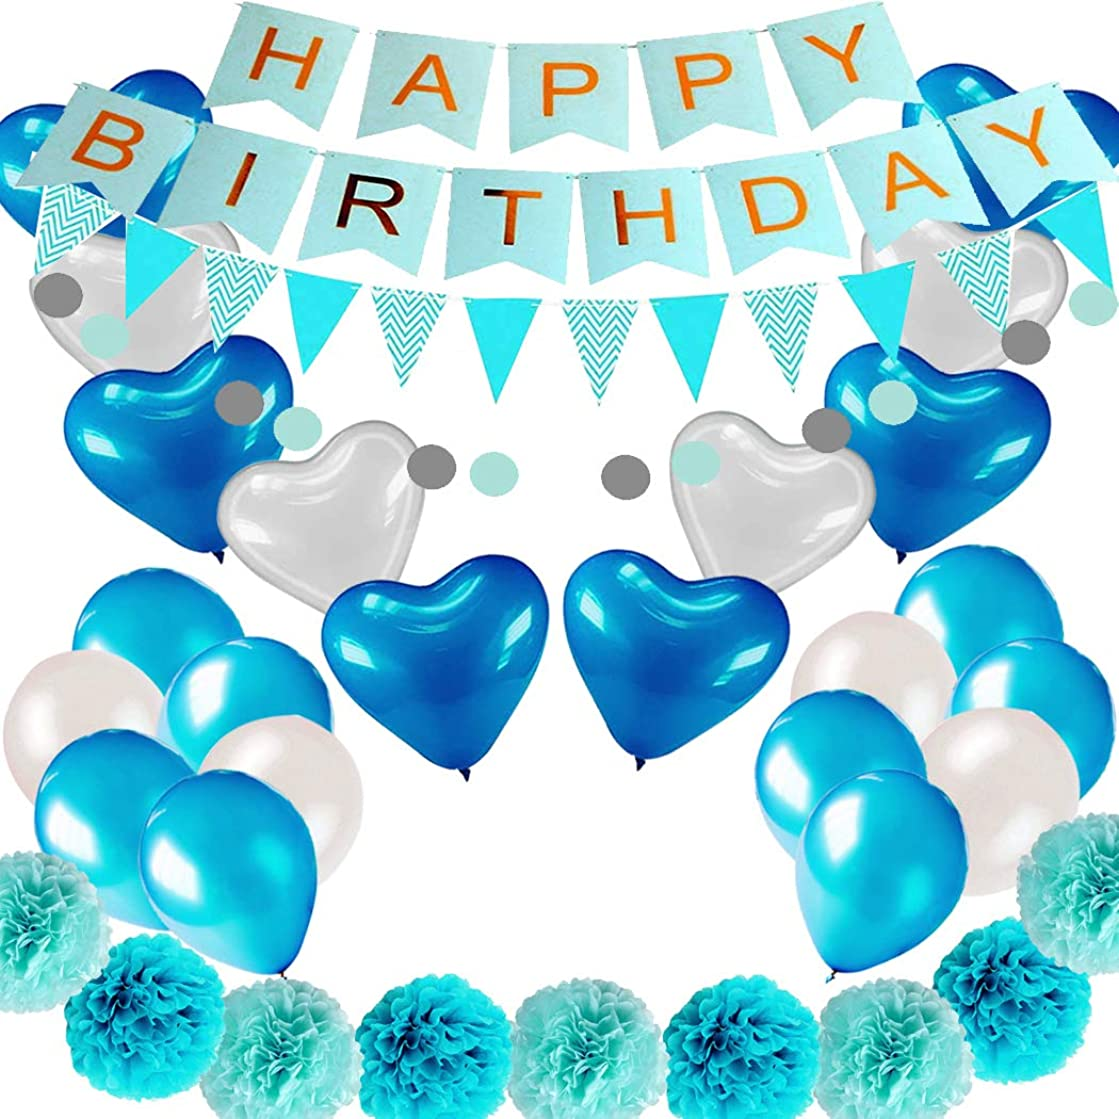 COLORFUL ELVES Blue Birthday Decorations Set for Boy Little Man Kids 29 Pcs Happy Birthday Banner Paper Pom Poms Latex Balloons Birthday Supplies Kit